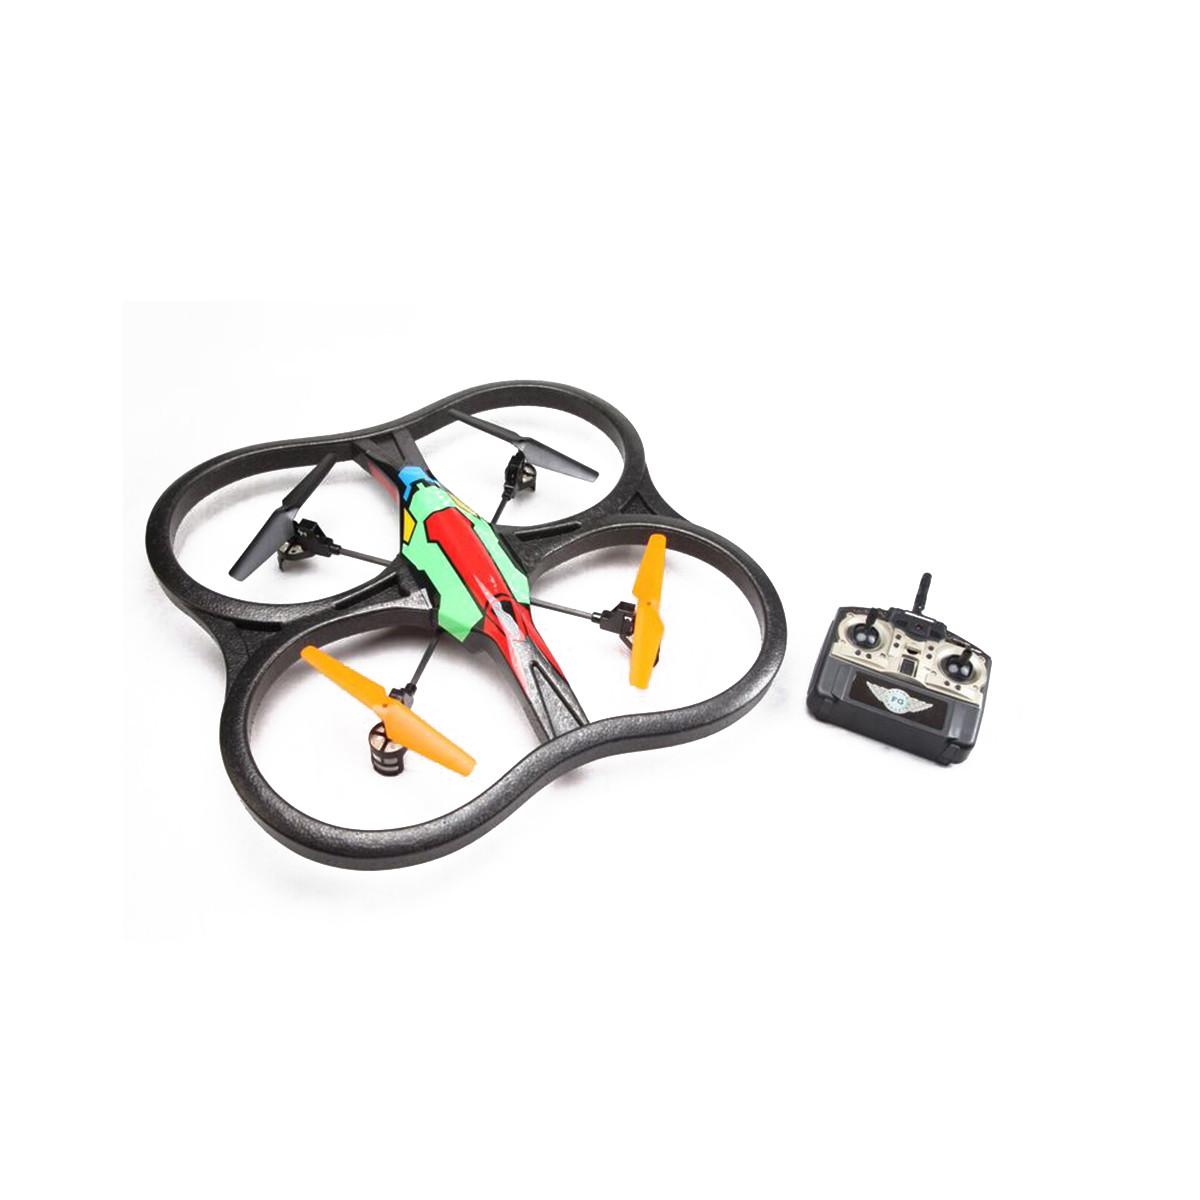 Flying Gadgets Remote-Controlled Xtra Drone with HD Camera